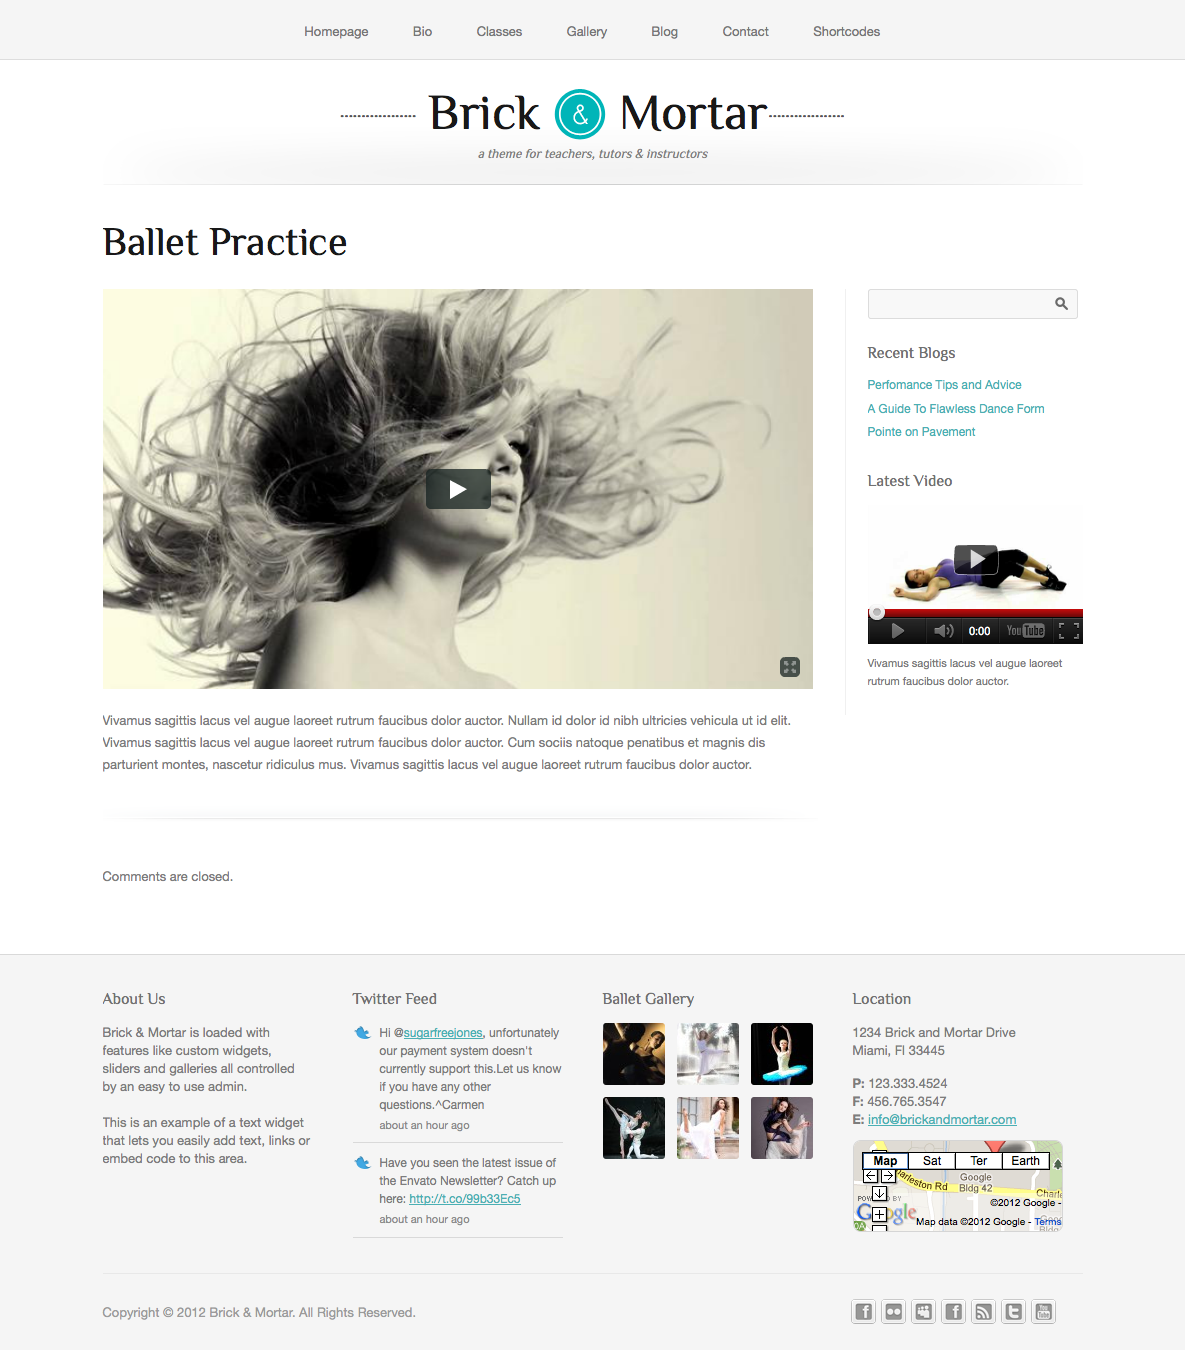 Brick & Mortar - A Personal Business Theme - Gallery Single - View for a single gallery image or video with full description.